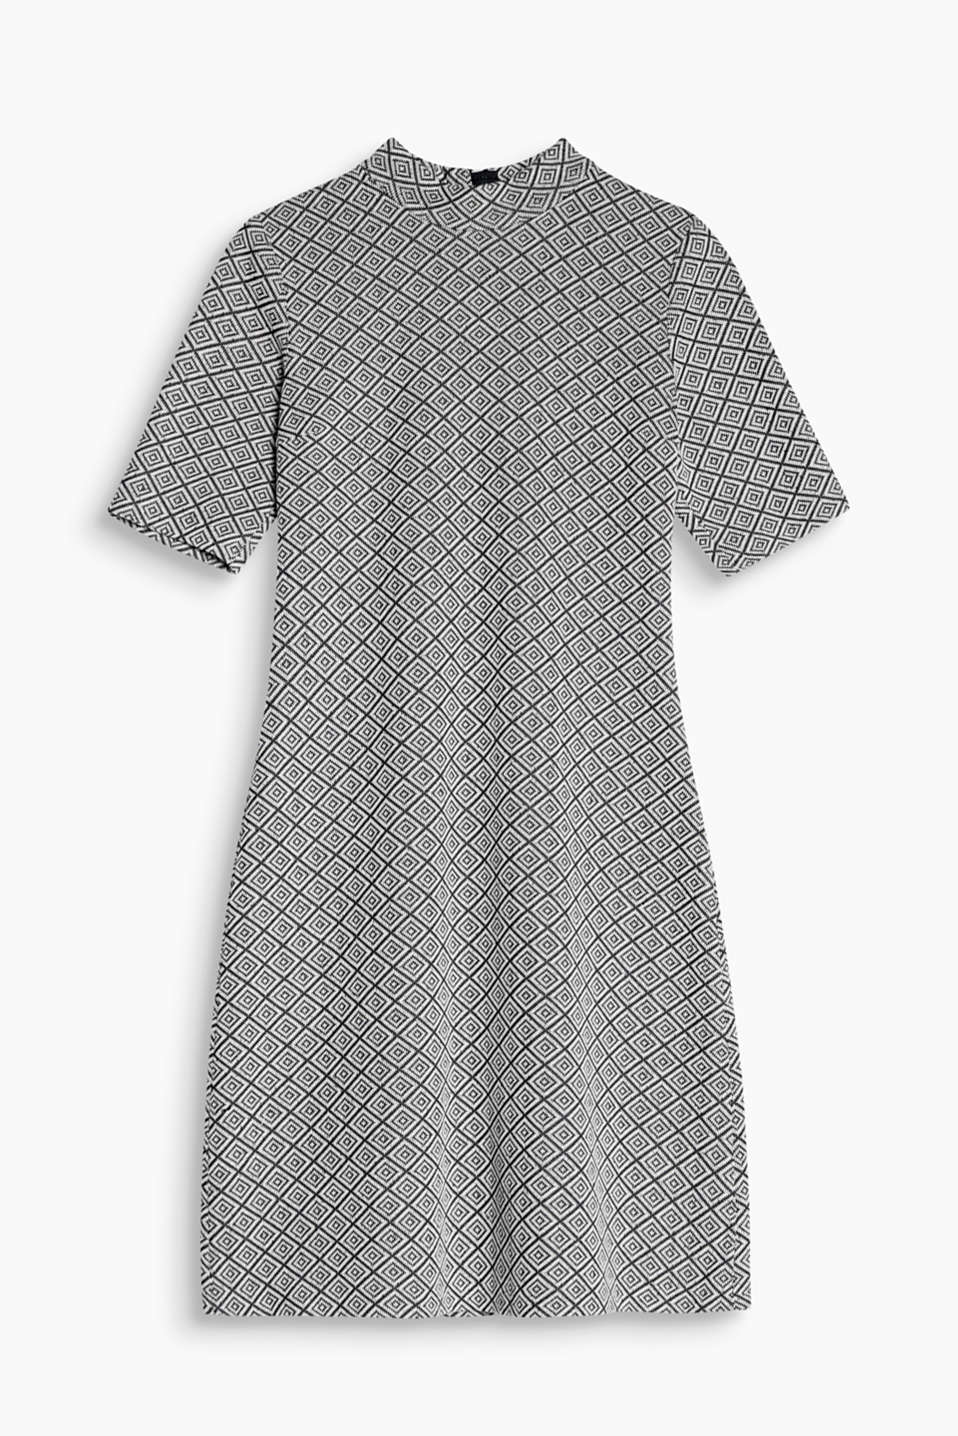 Ravishingly retro diamond pattern: jacquard jersey dress with a stand-up collar and flared skirt, blended cotton